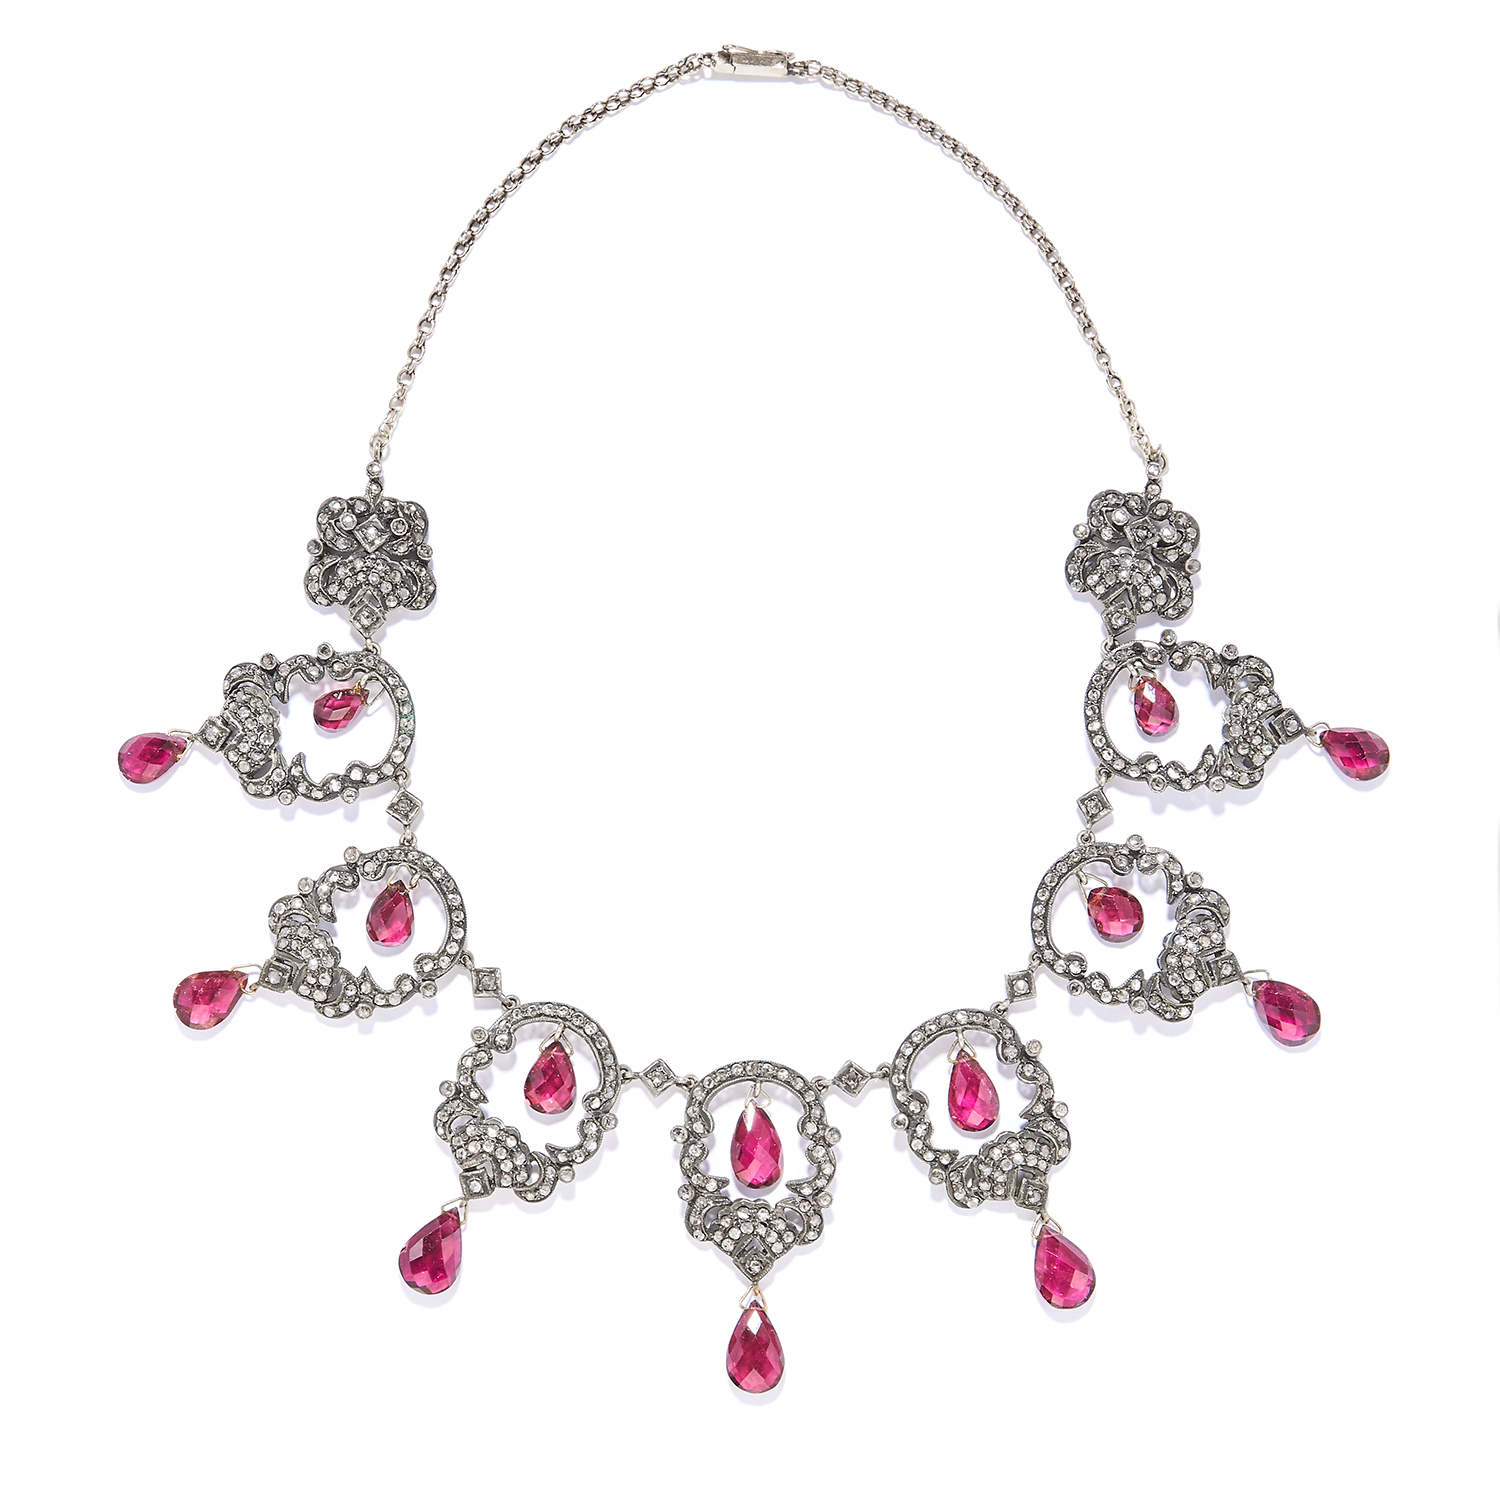 AN ANTIQUE TOURMALINE AND DIAMOND NECKLACE, 19TH CENTURY in yellow gold and silver, openwork